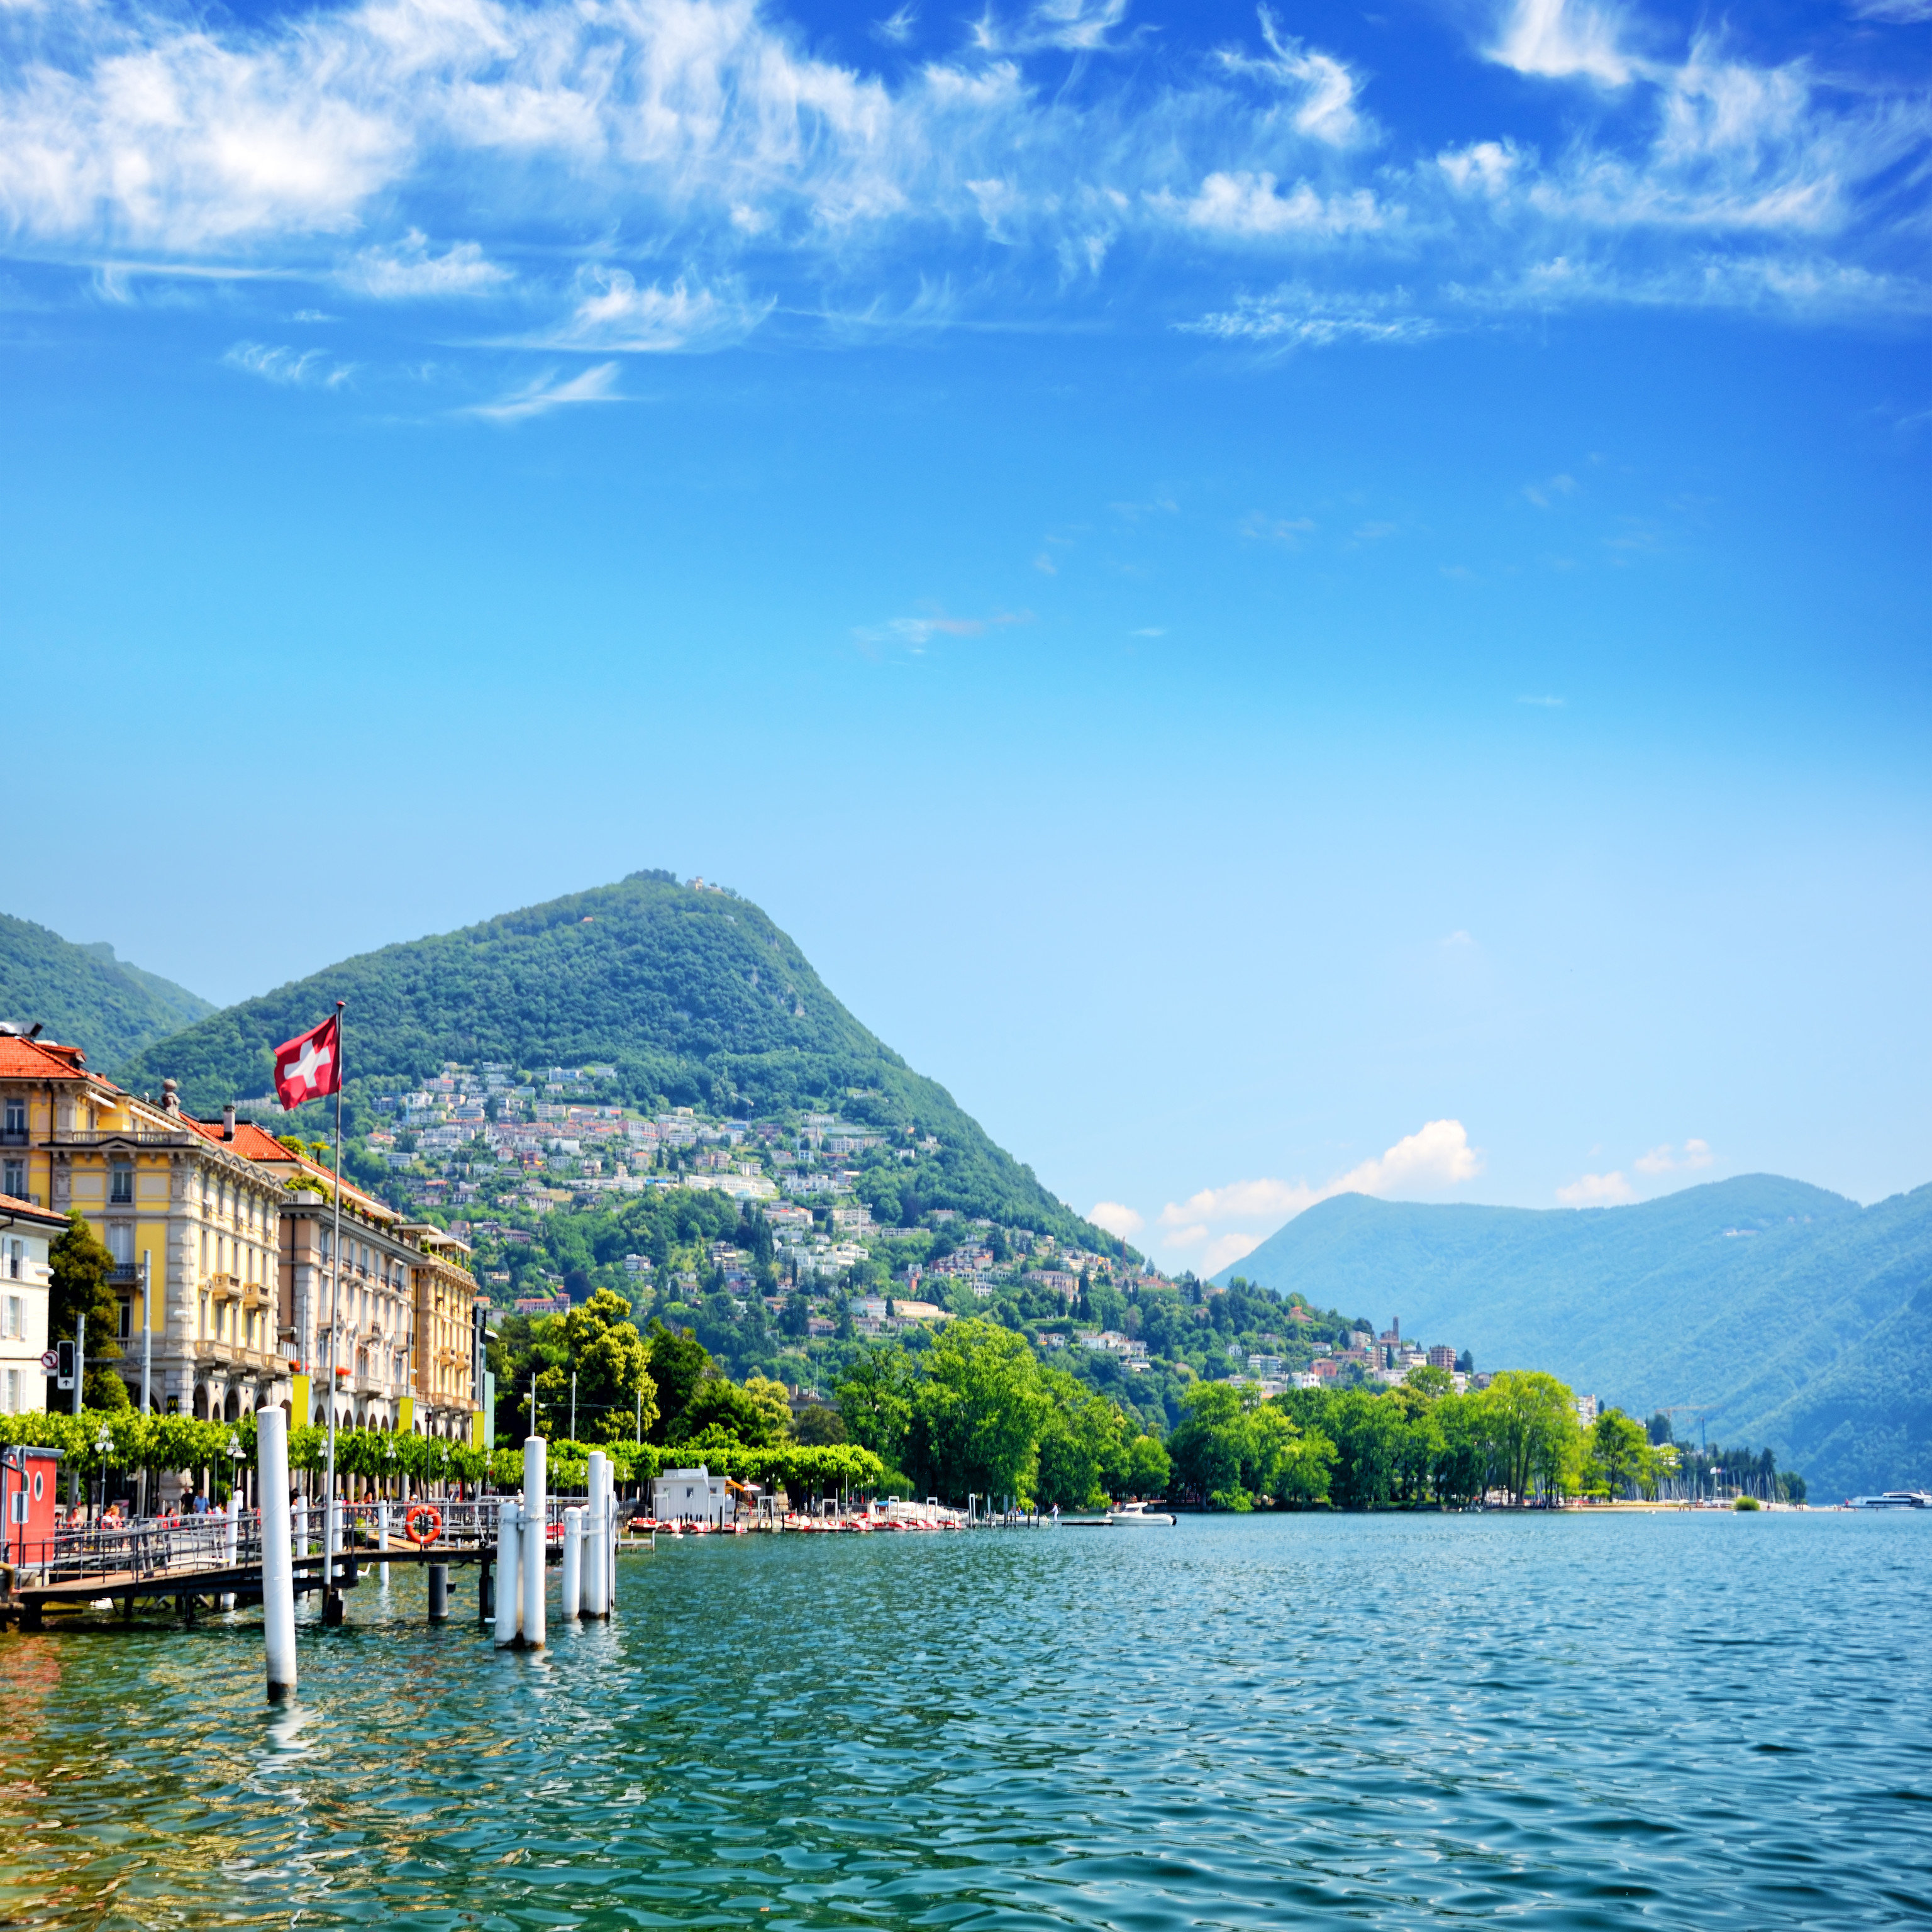 Secret Getaways Trip Ideas water outdoor mountain sky Boat mountainous landforms landform geographical feature body of water Lake mountain range Nature fjord Sea vacation loch reflection landscape bay docked vehicle alps reservoir glacial landform surrounded day